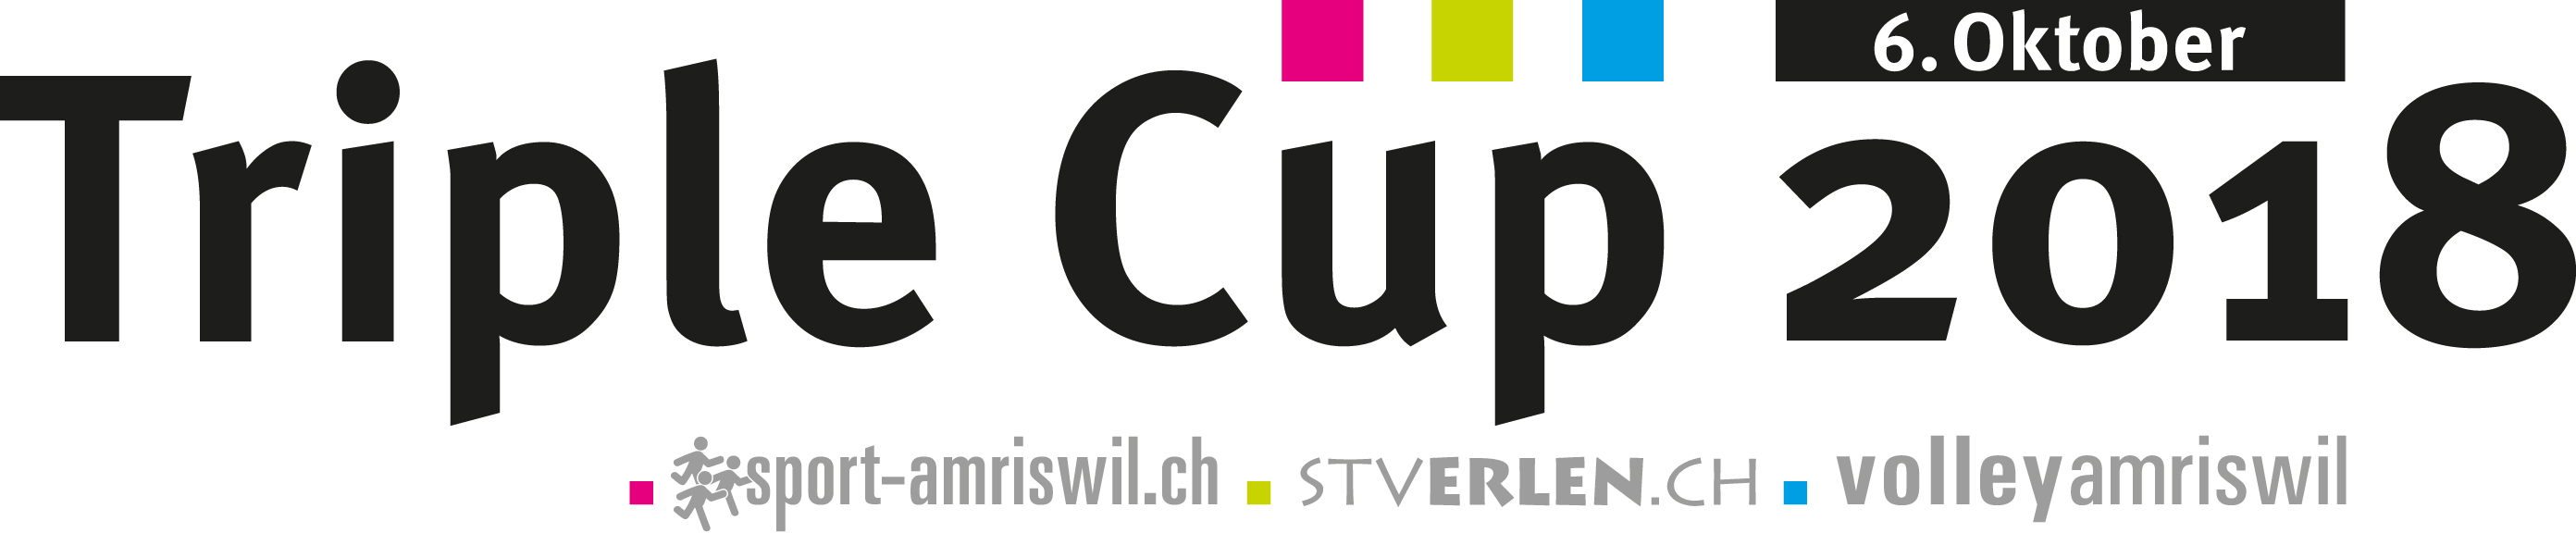 Triple Cup 2018